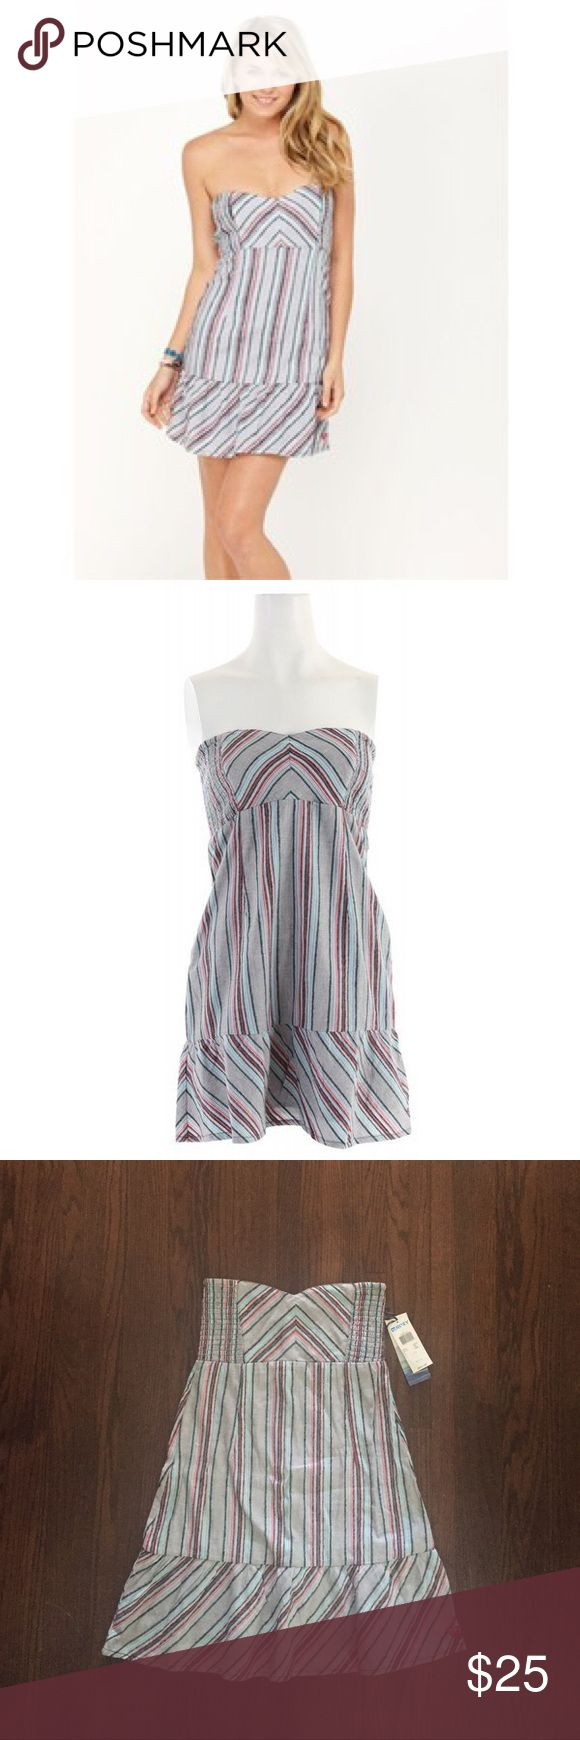 Selling this Roxy Nautical Mile sundress on Poshmark! My username is: jennyst79. #shopmycloset #poshmark #fashion #shopping #style #forsale #Roxy #Dresses & Skirts